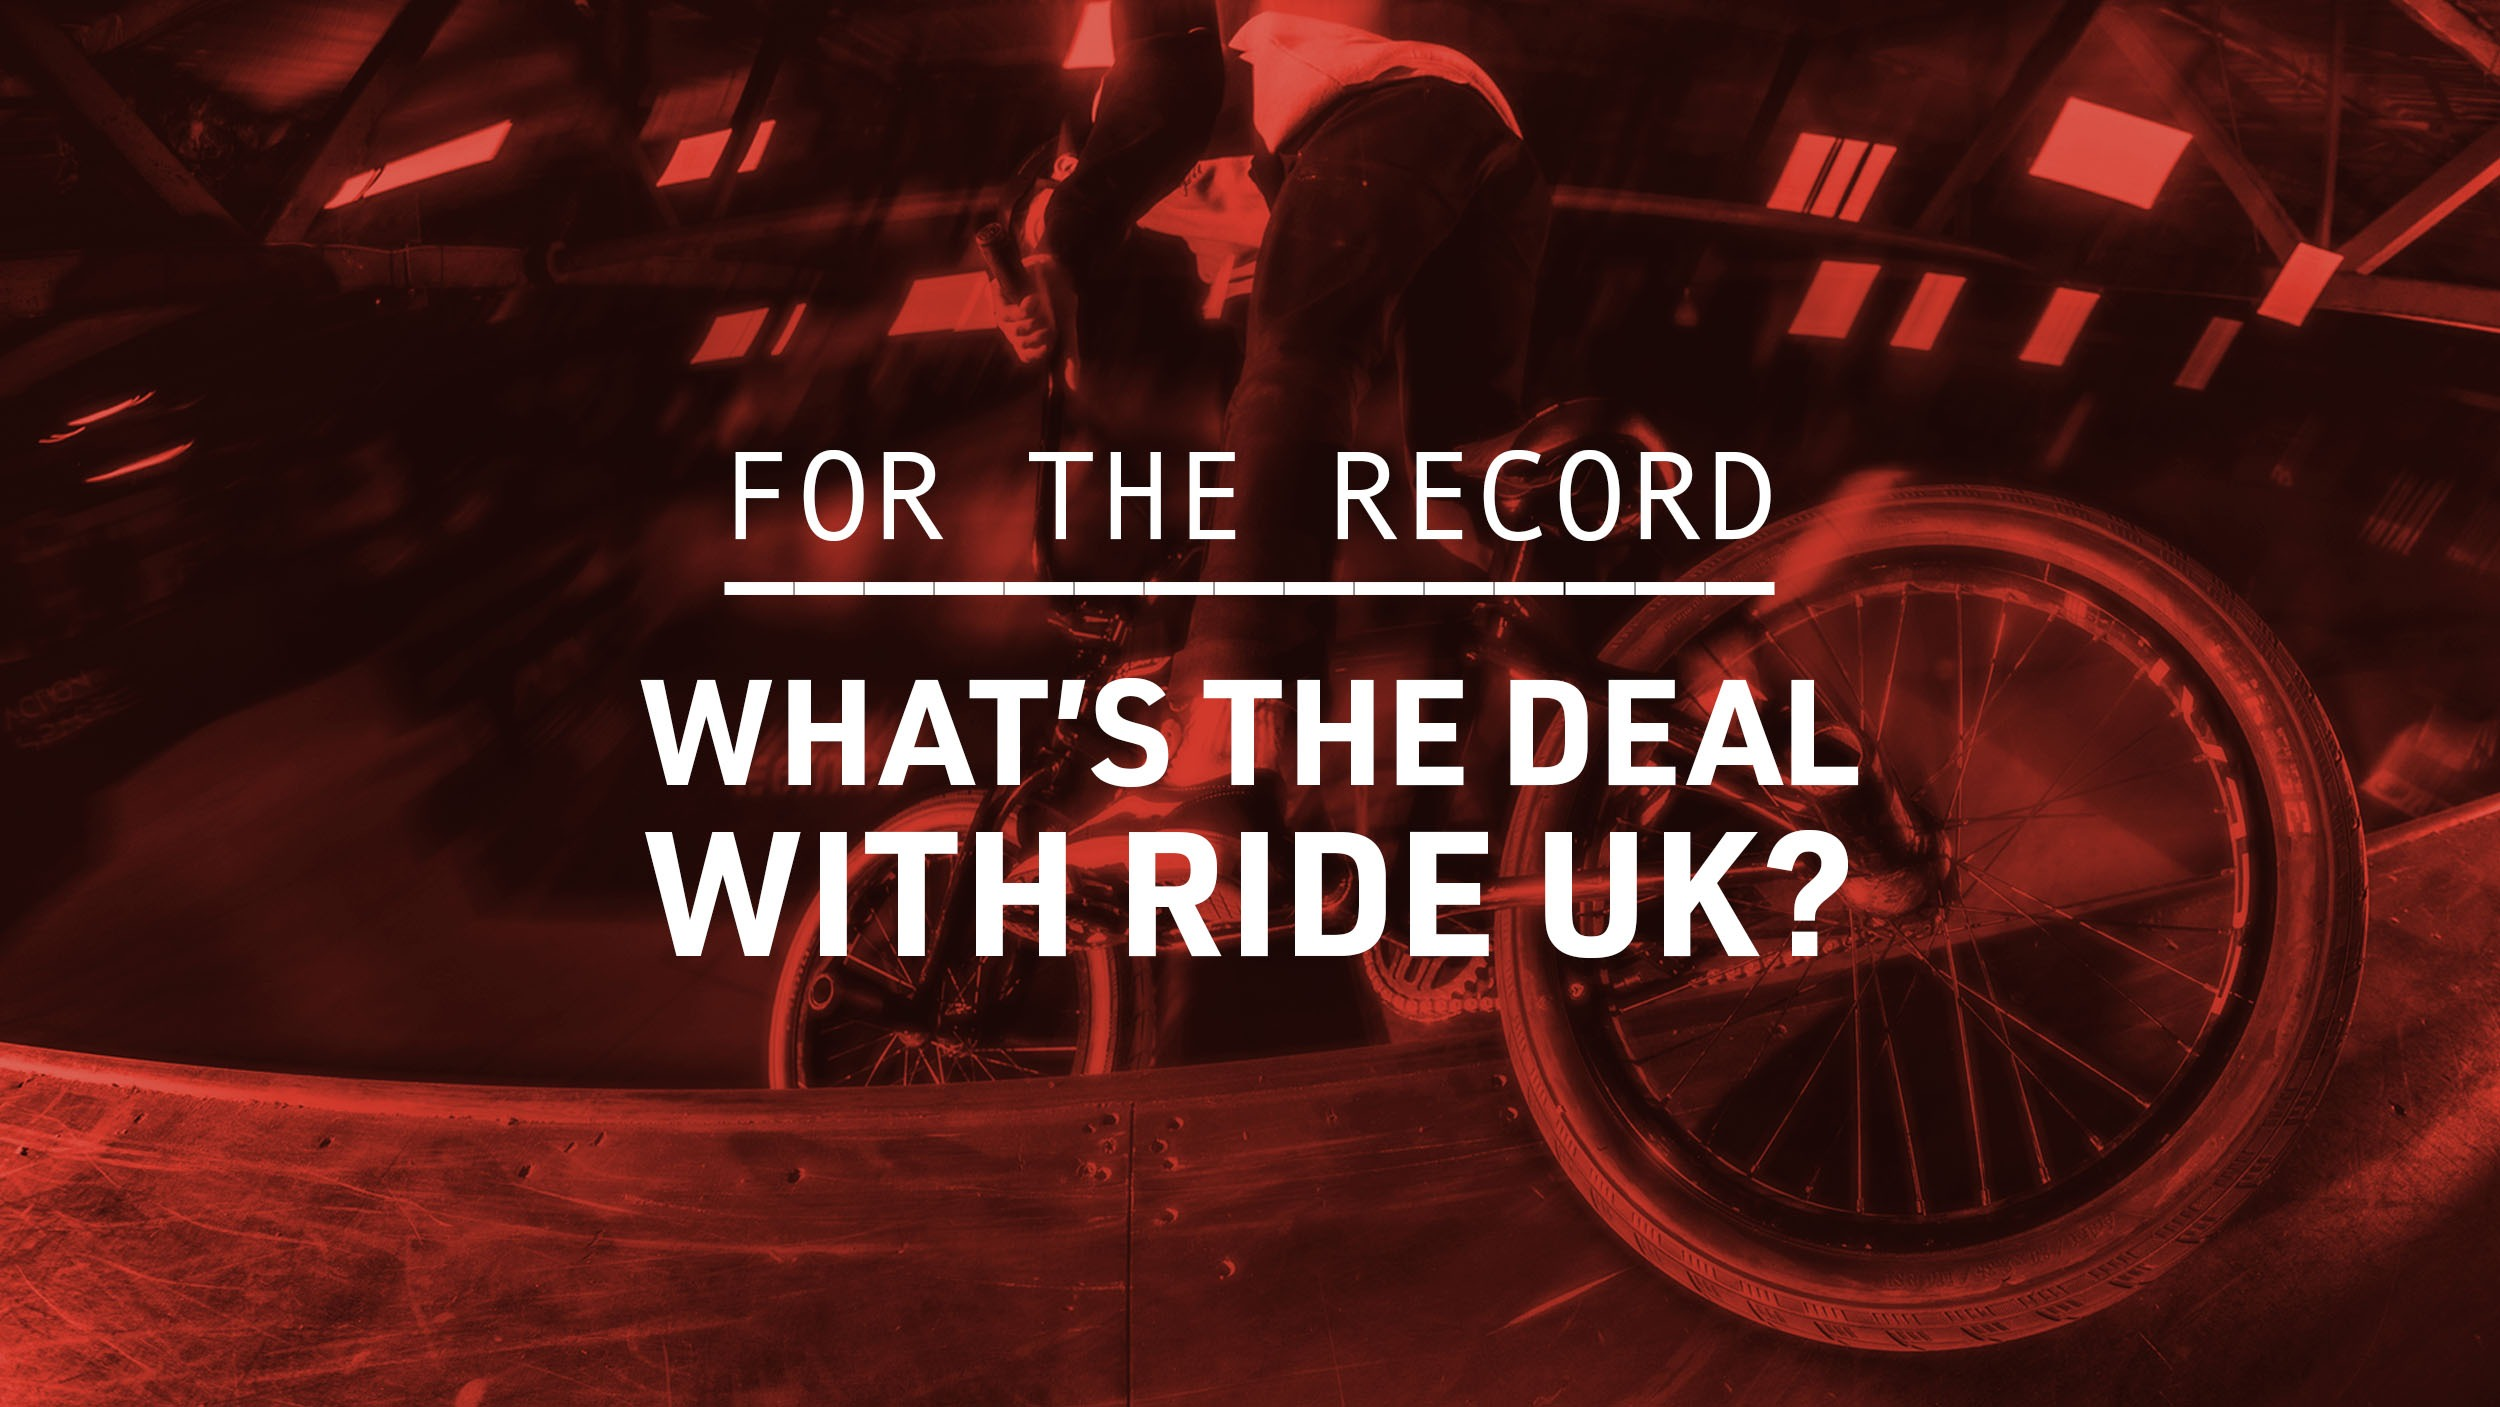 FOR THE RECORD: What's the deal with Ride UK?